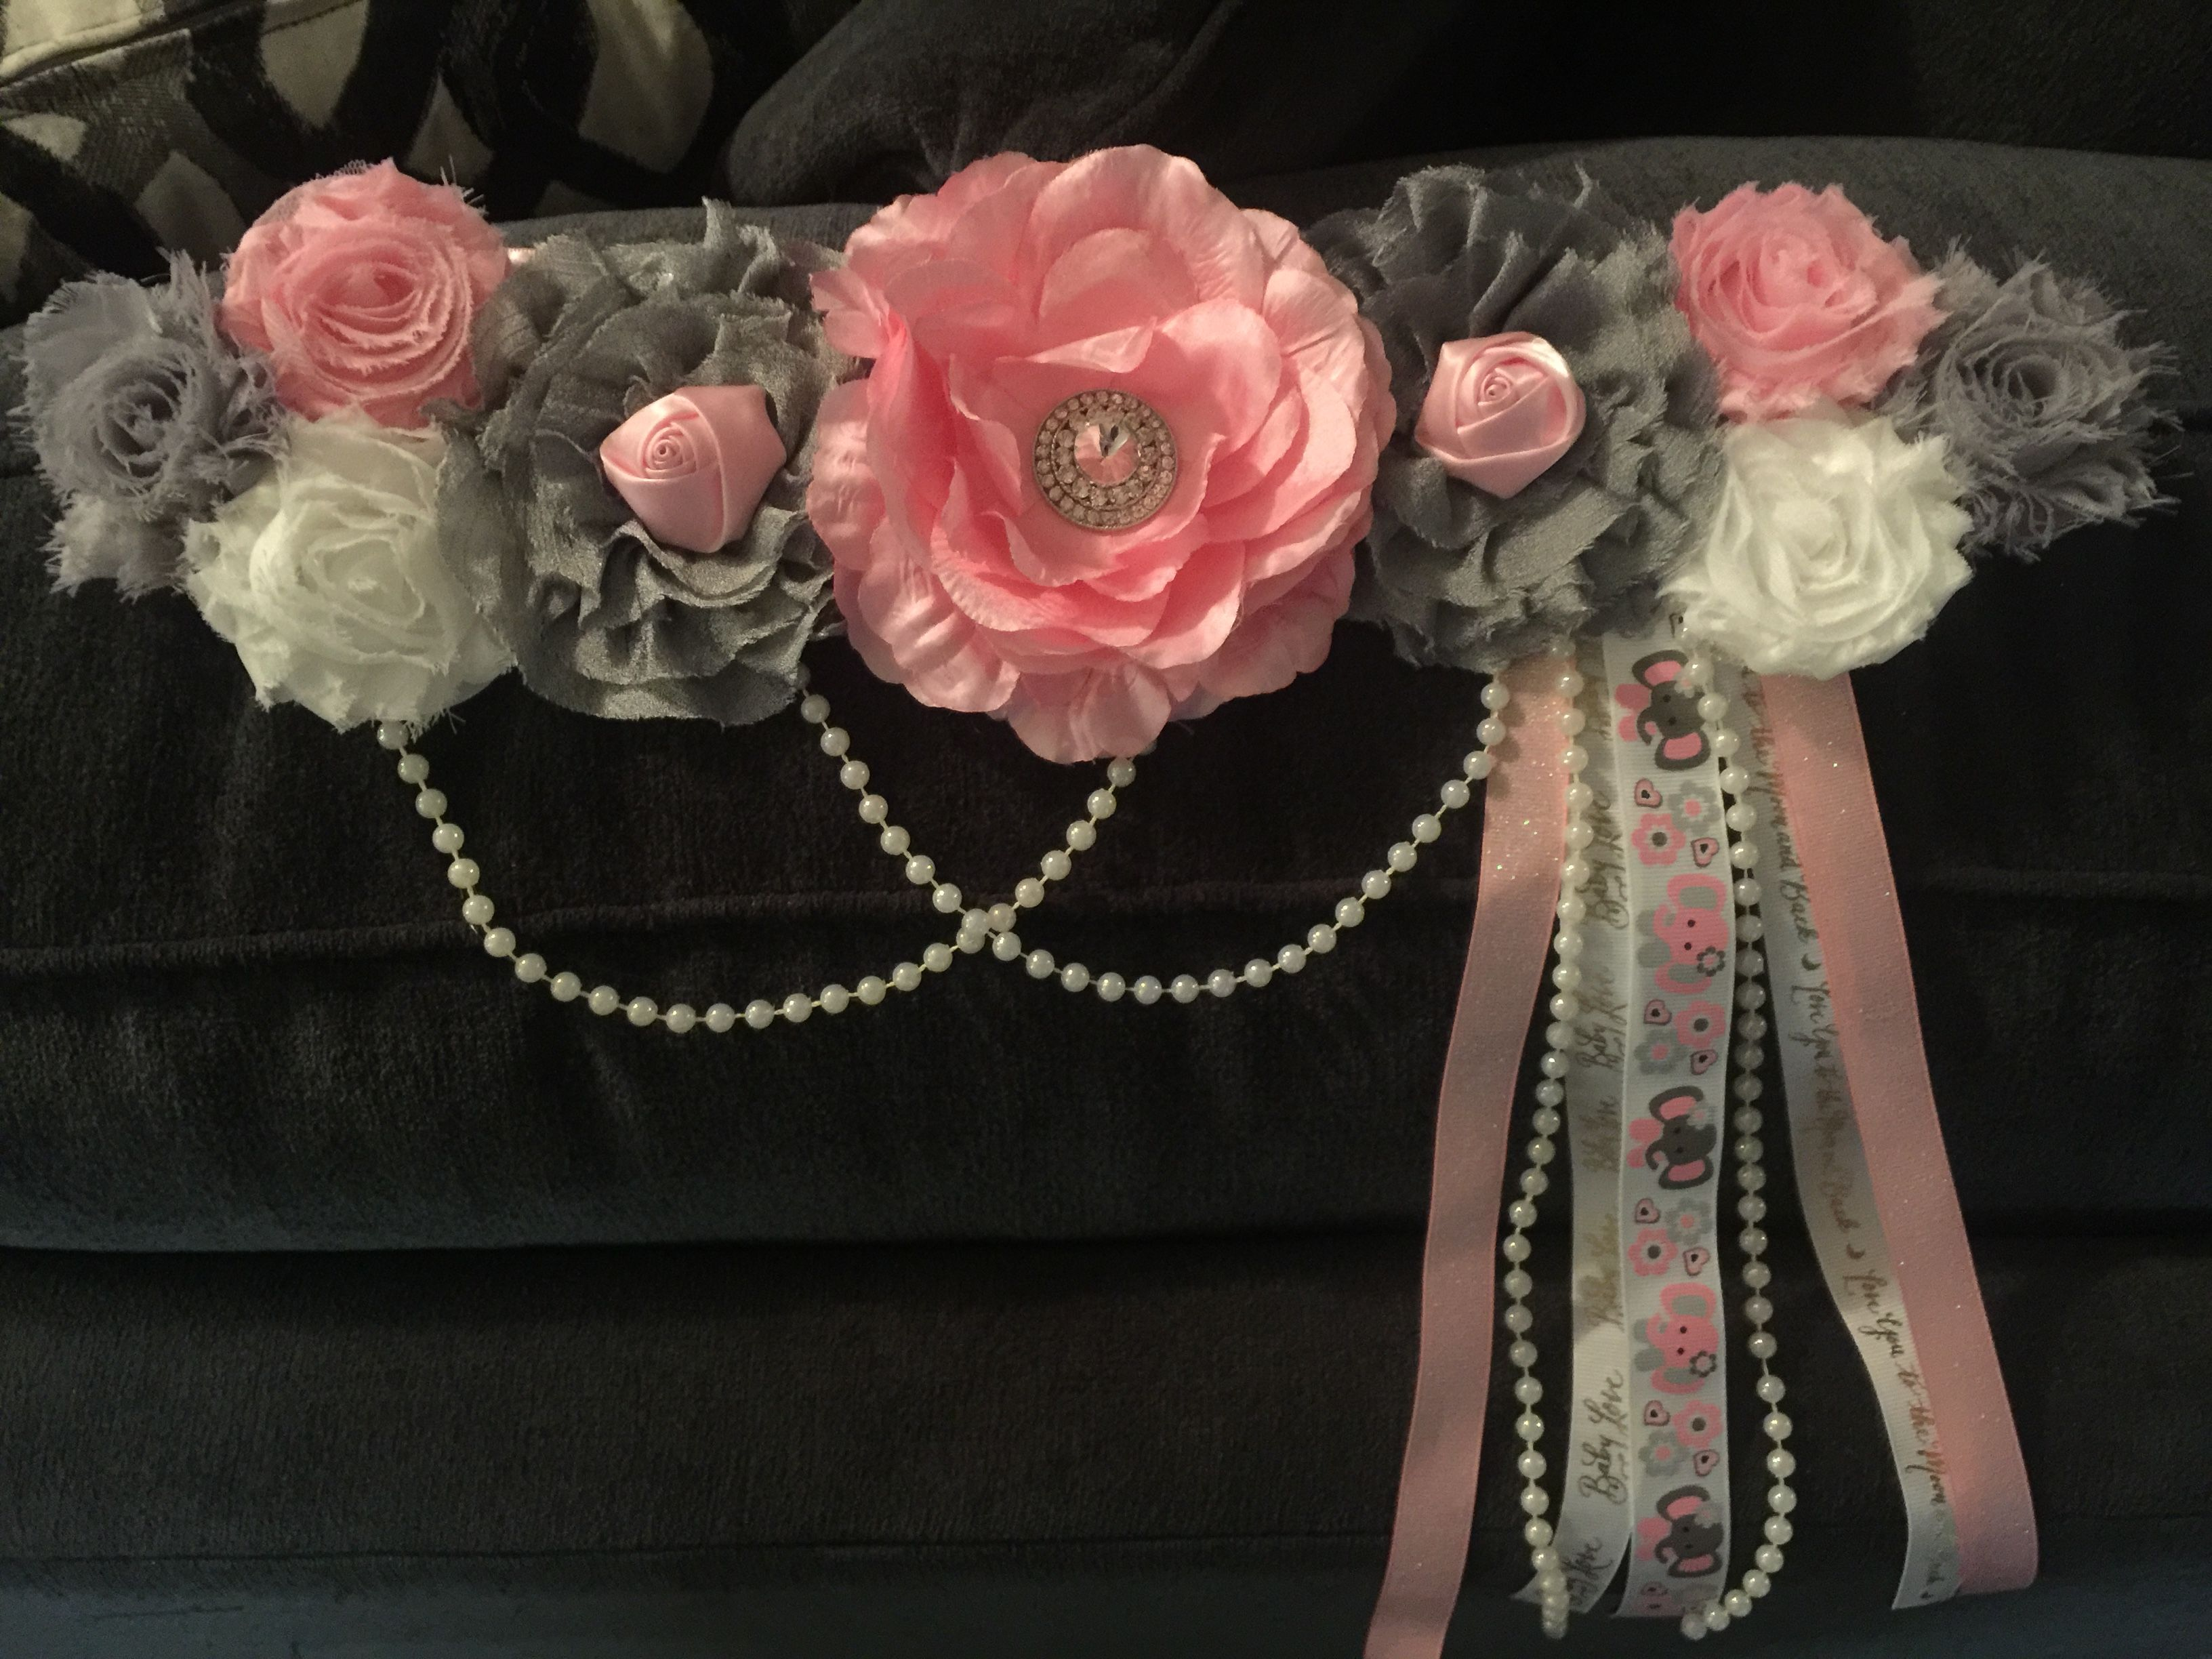 Pink gray white maternity sash for a baby shower with pearls